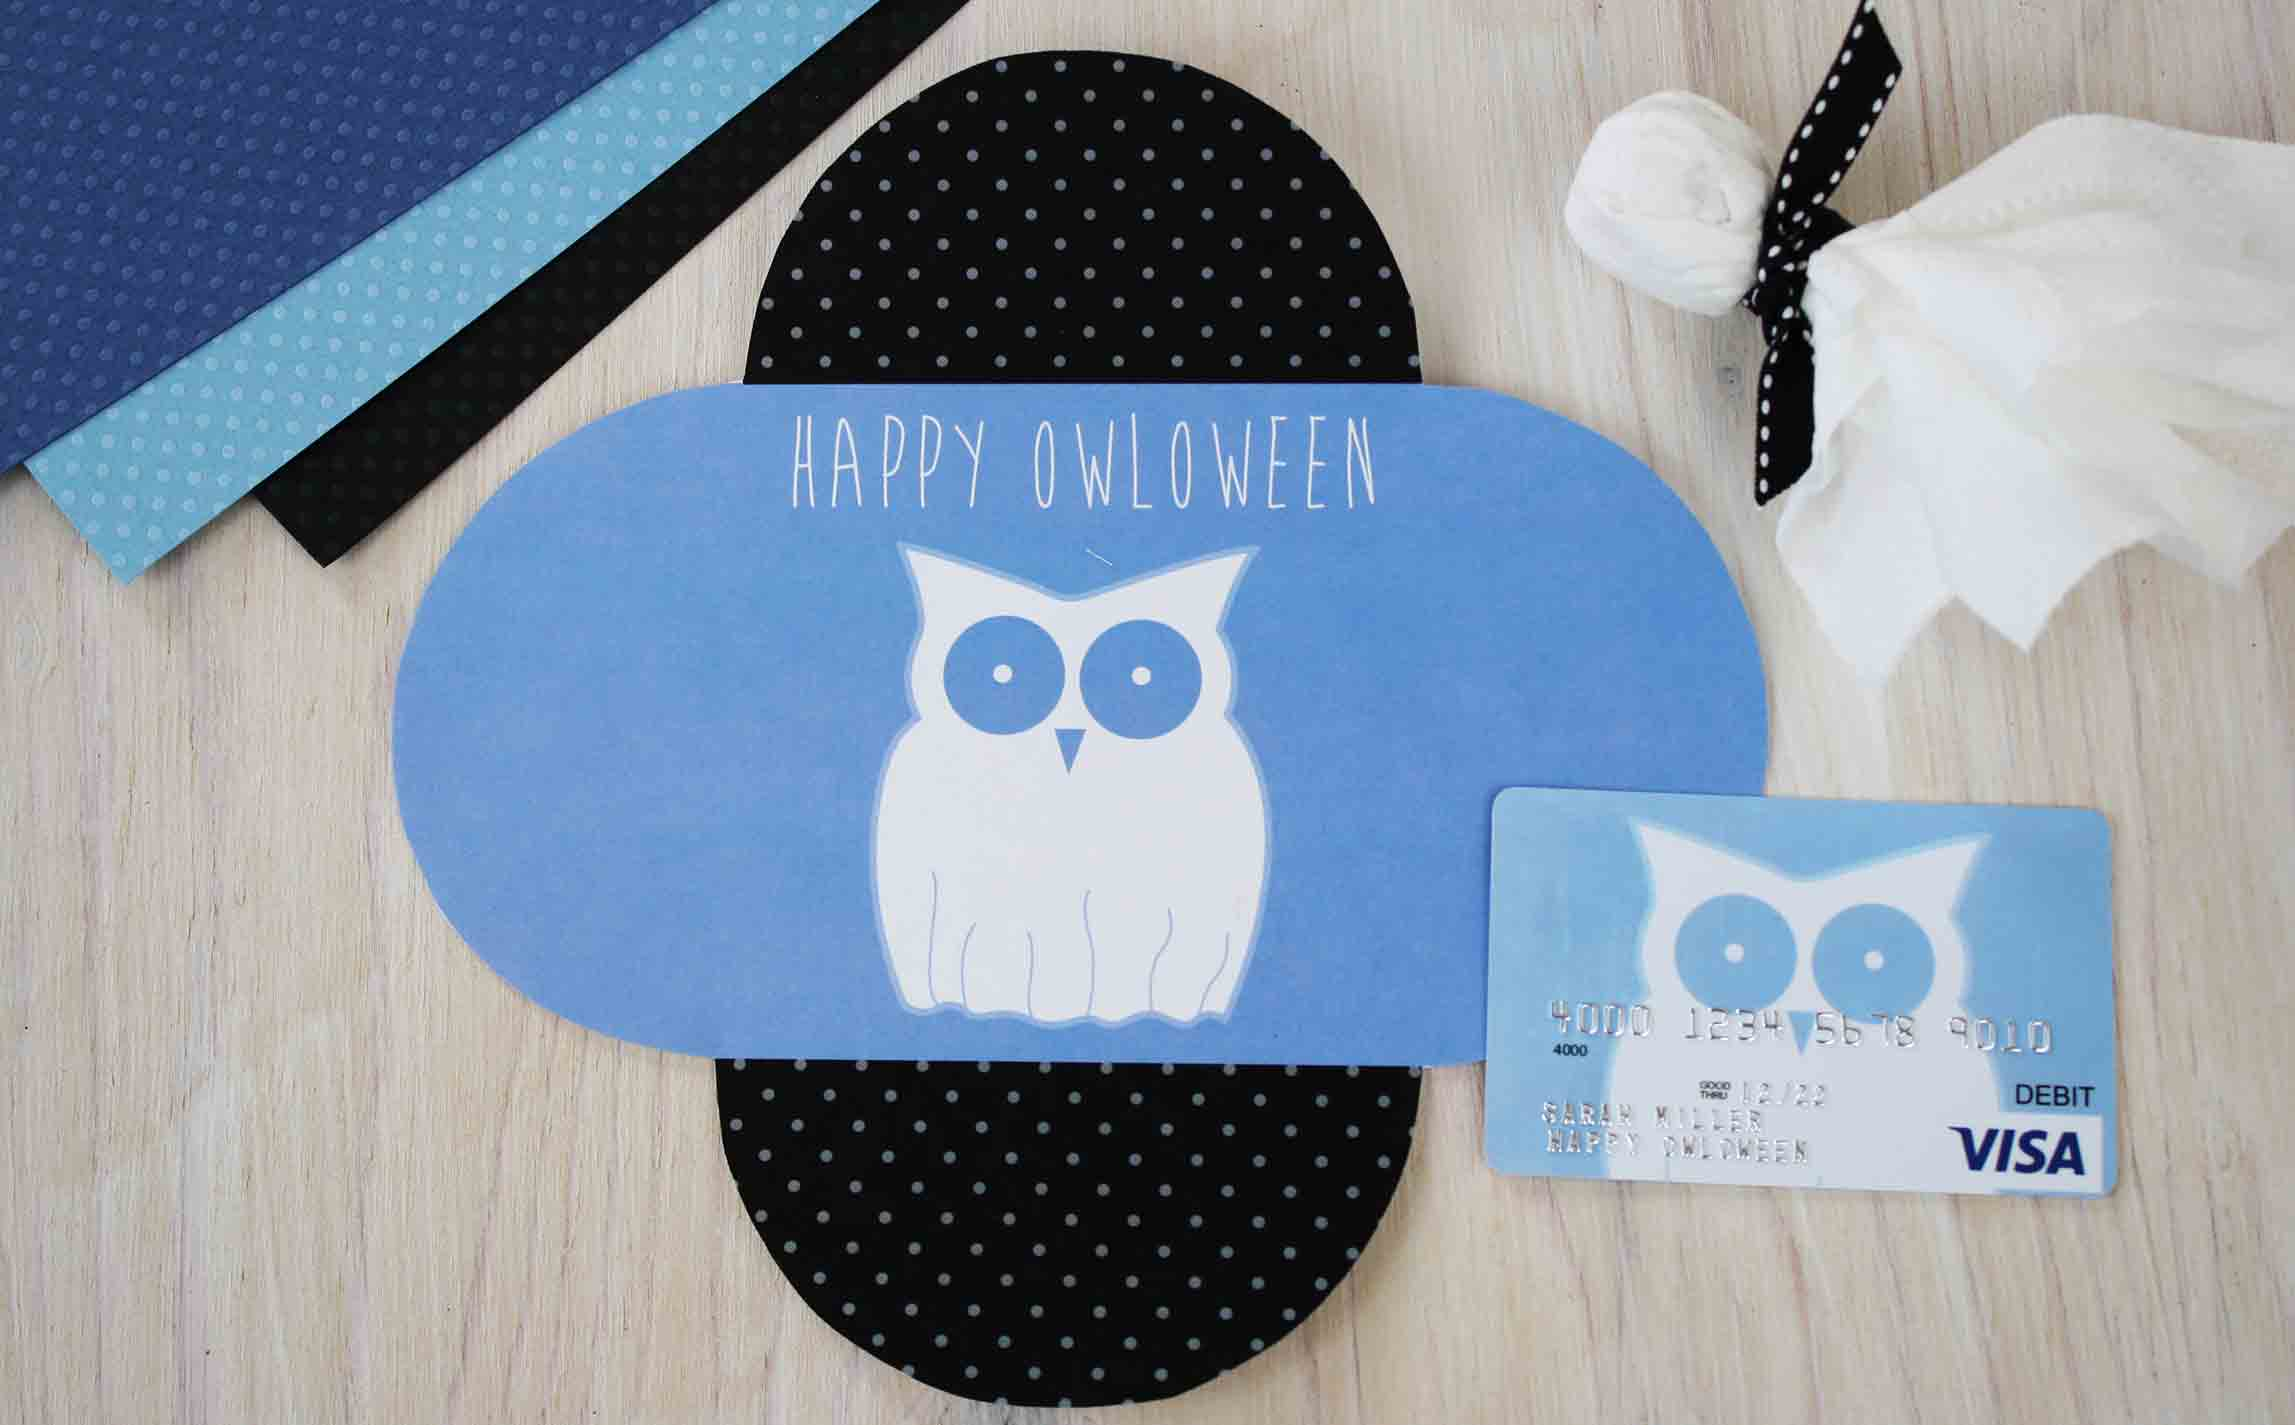 Happy OWLoween Ghost inside card